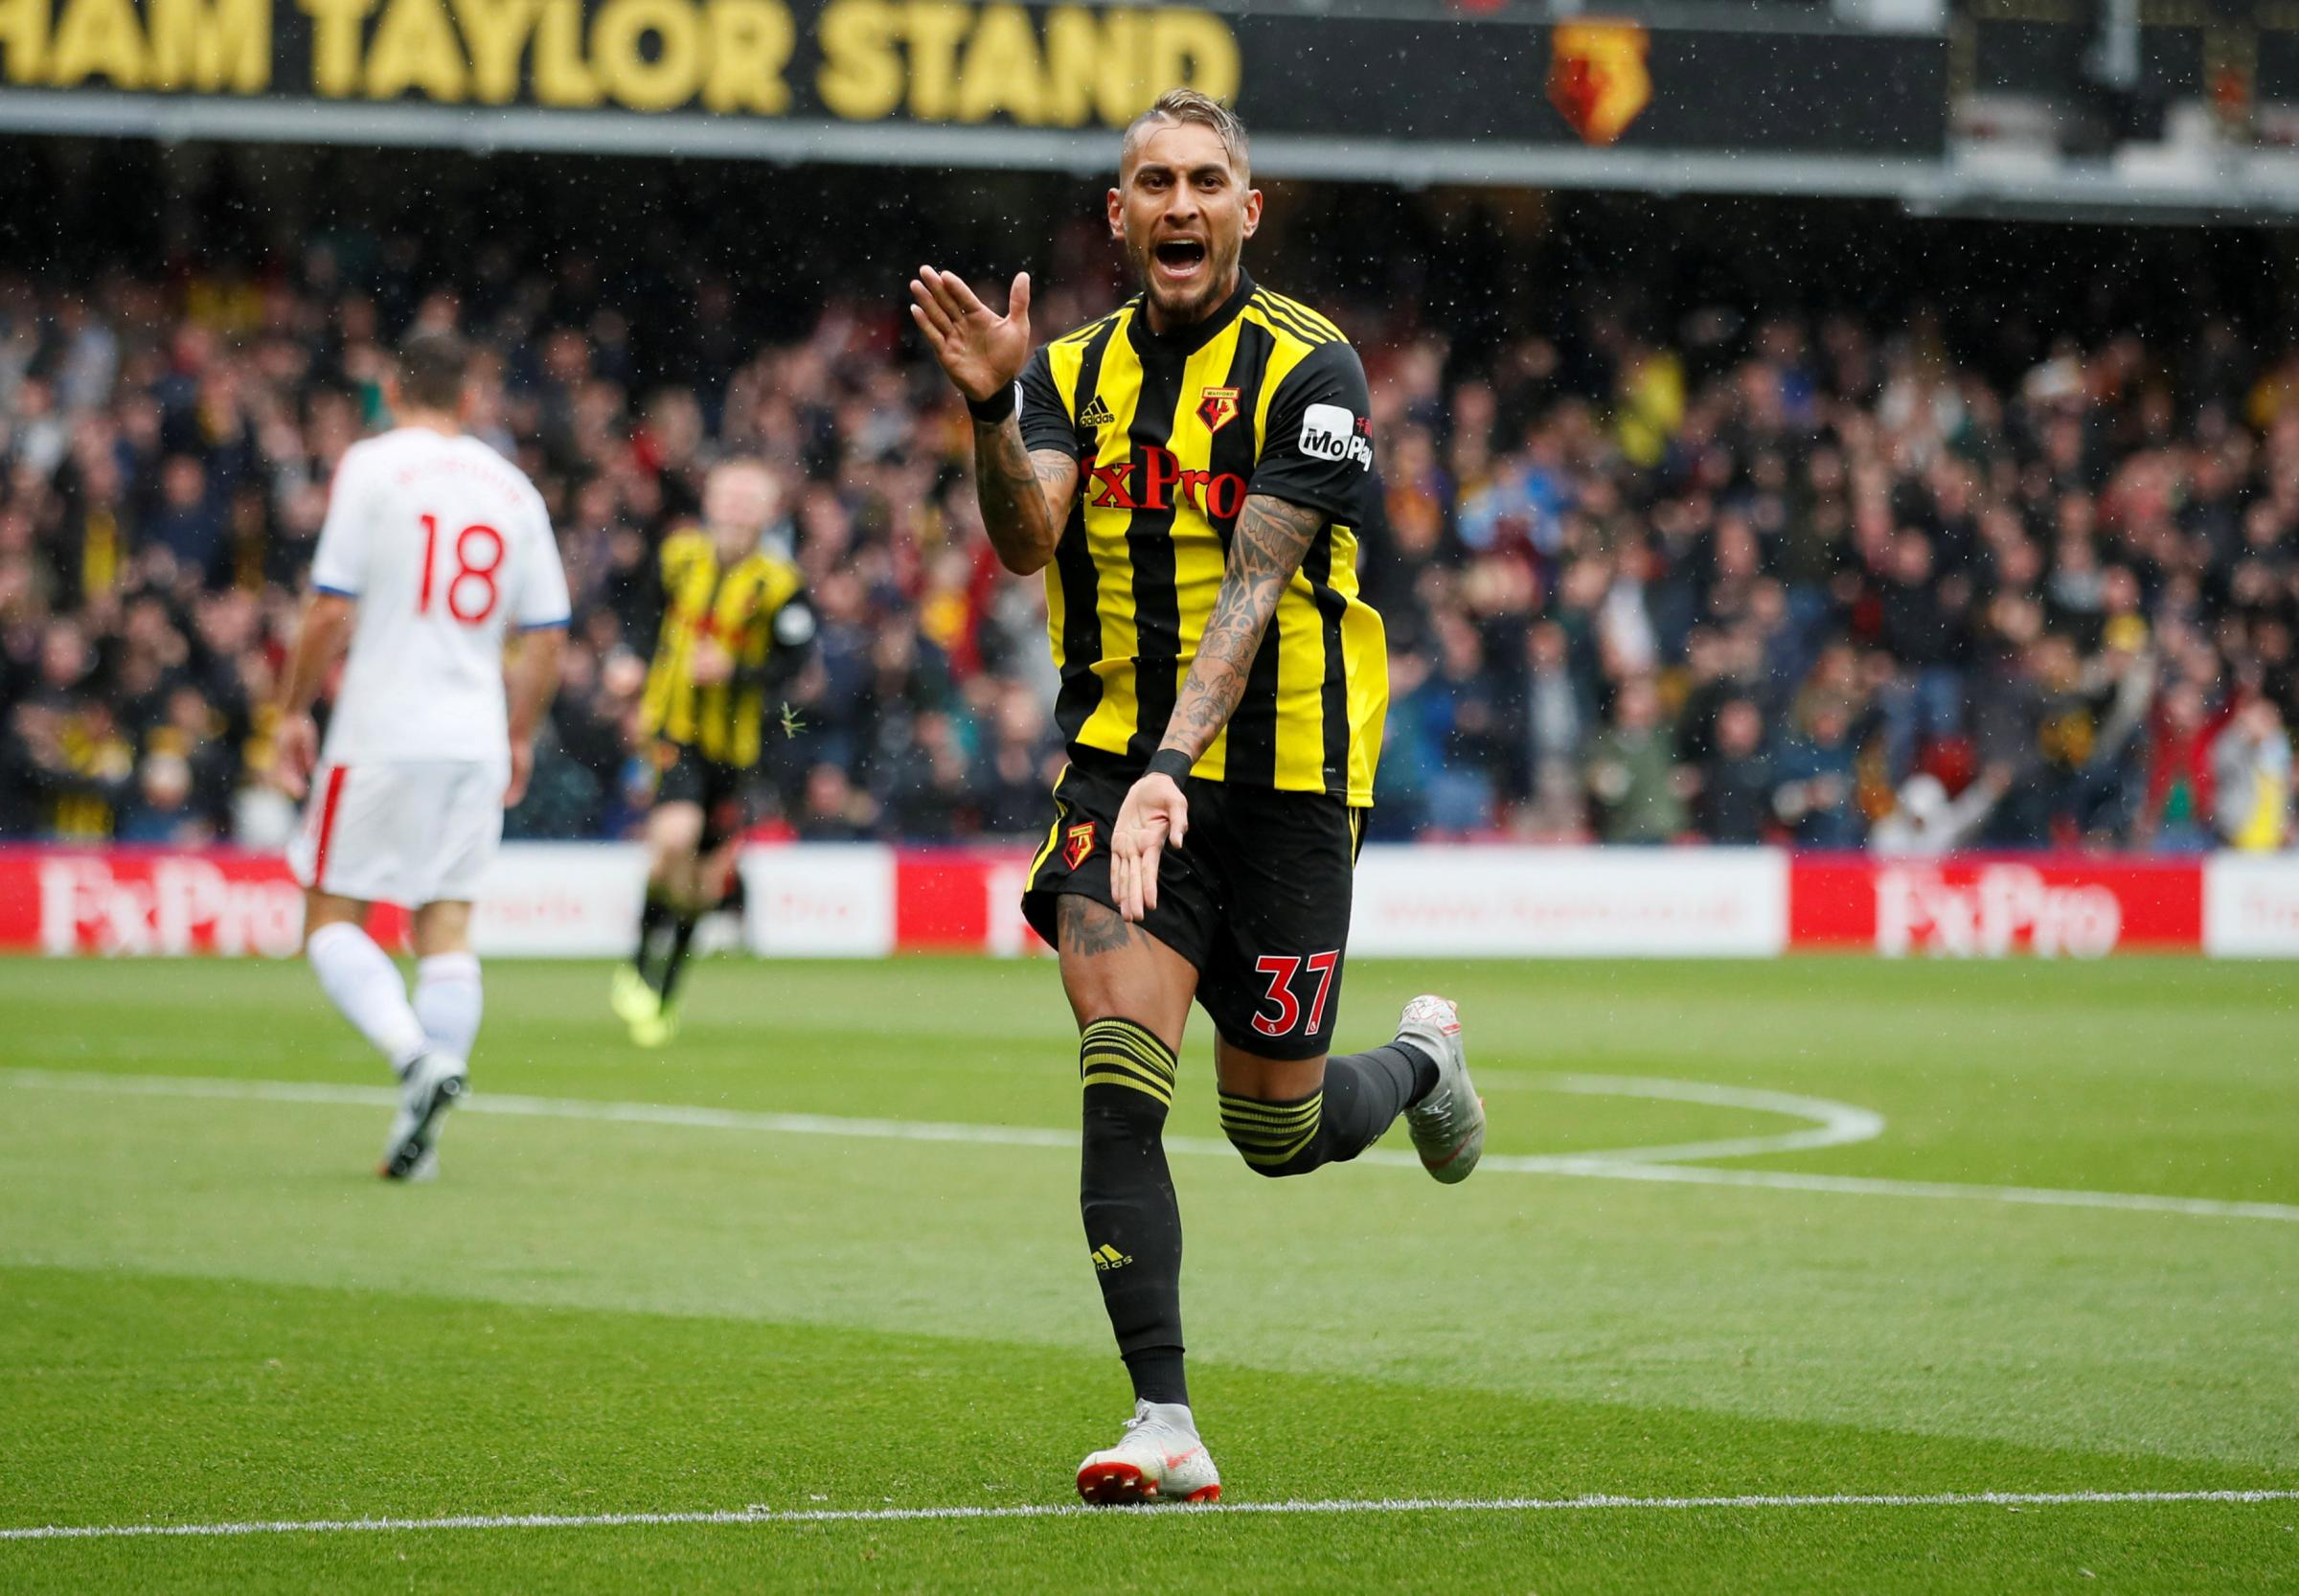 Roberto Pereyra celebrates continuing his Vicarage Road hot streak. Picture: Action Images